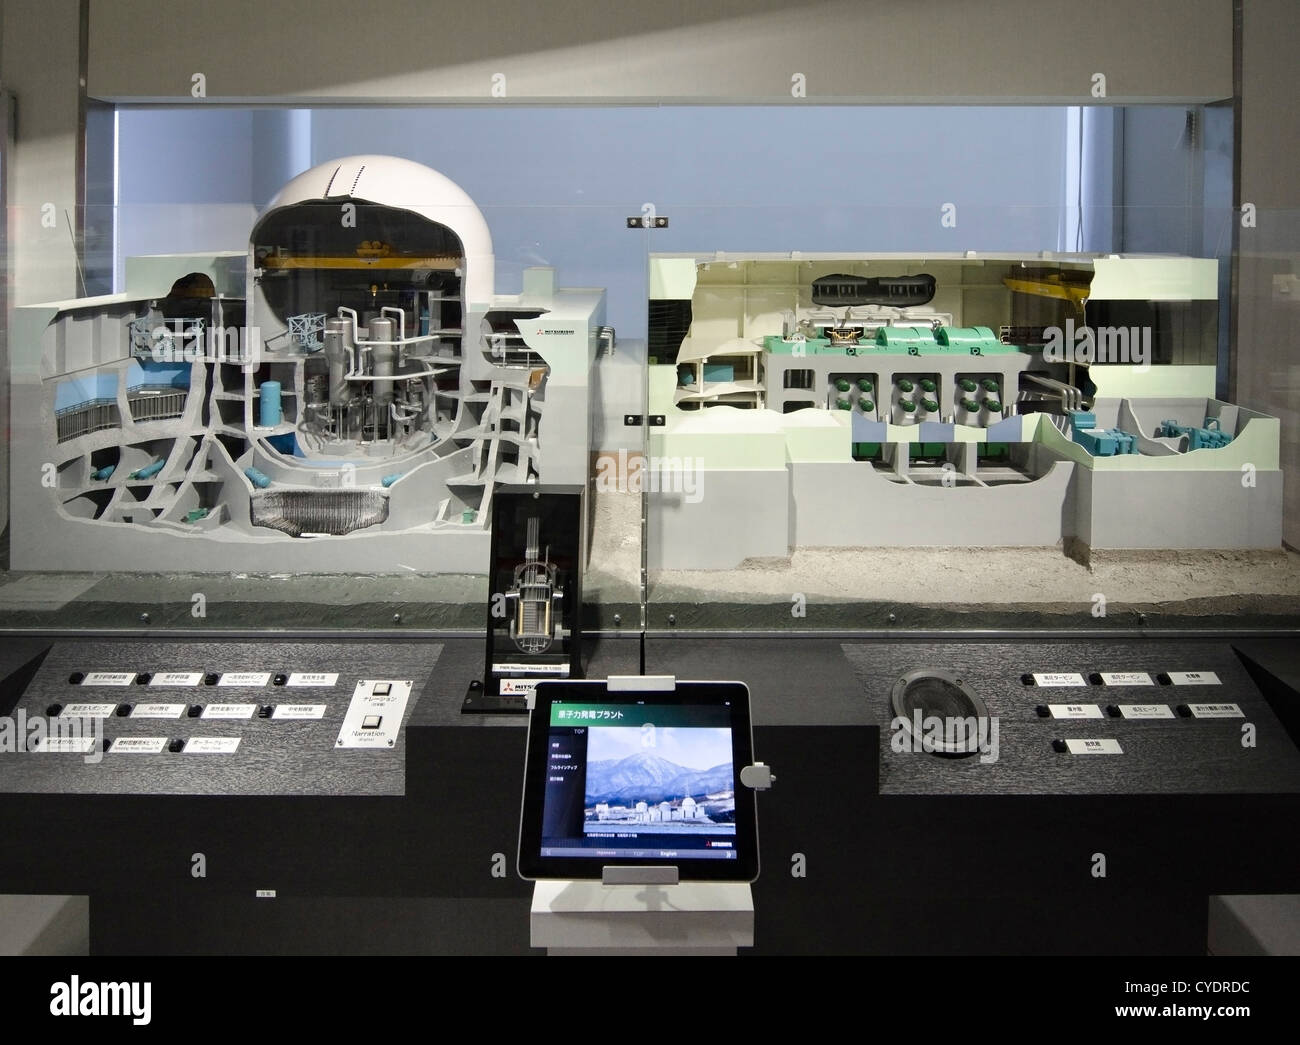 Nuclear Power Plant Model in the Mitsusbishi Heavy Industry show Room - Stock Image